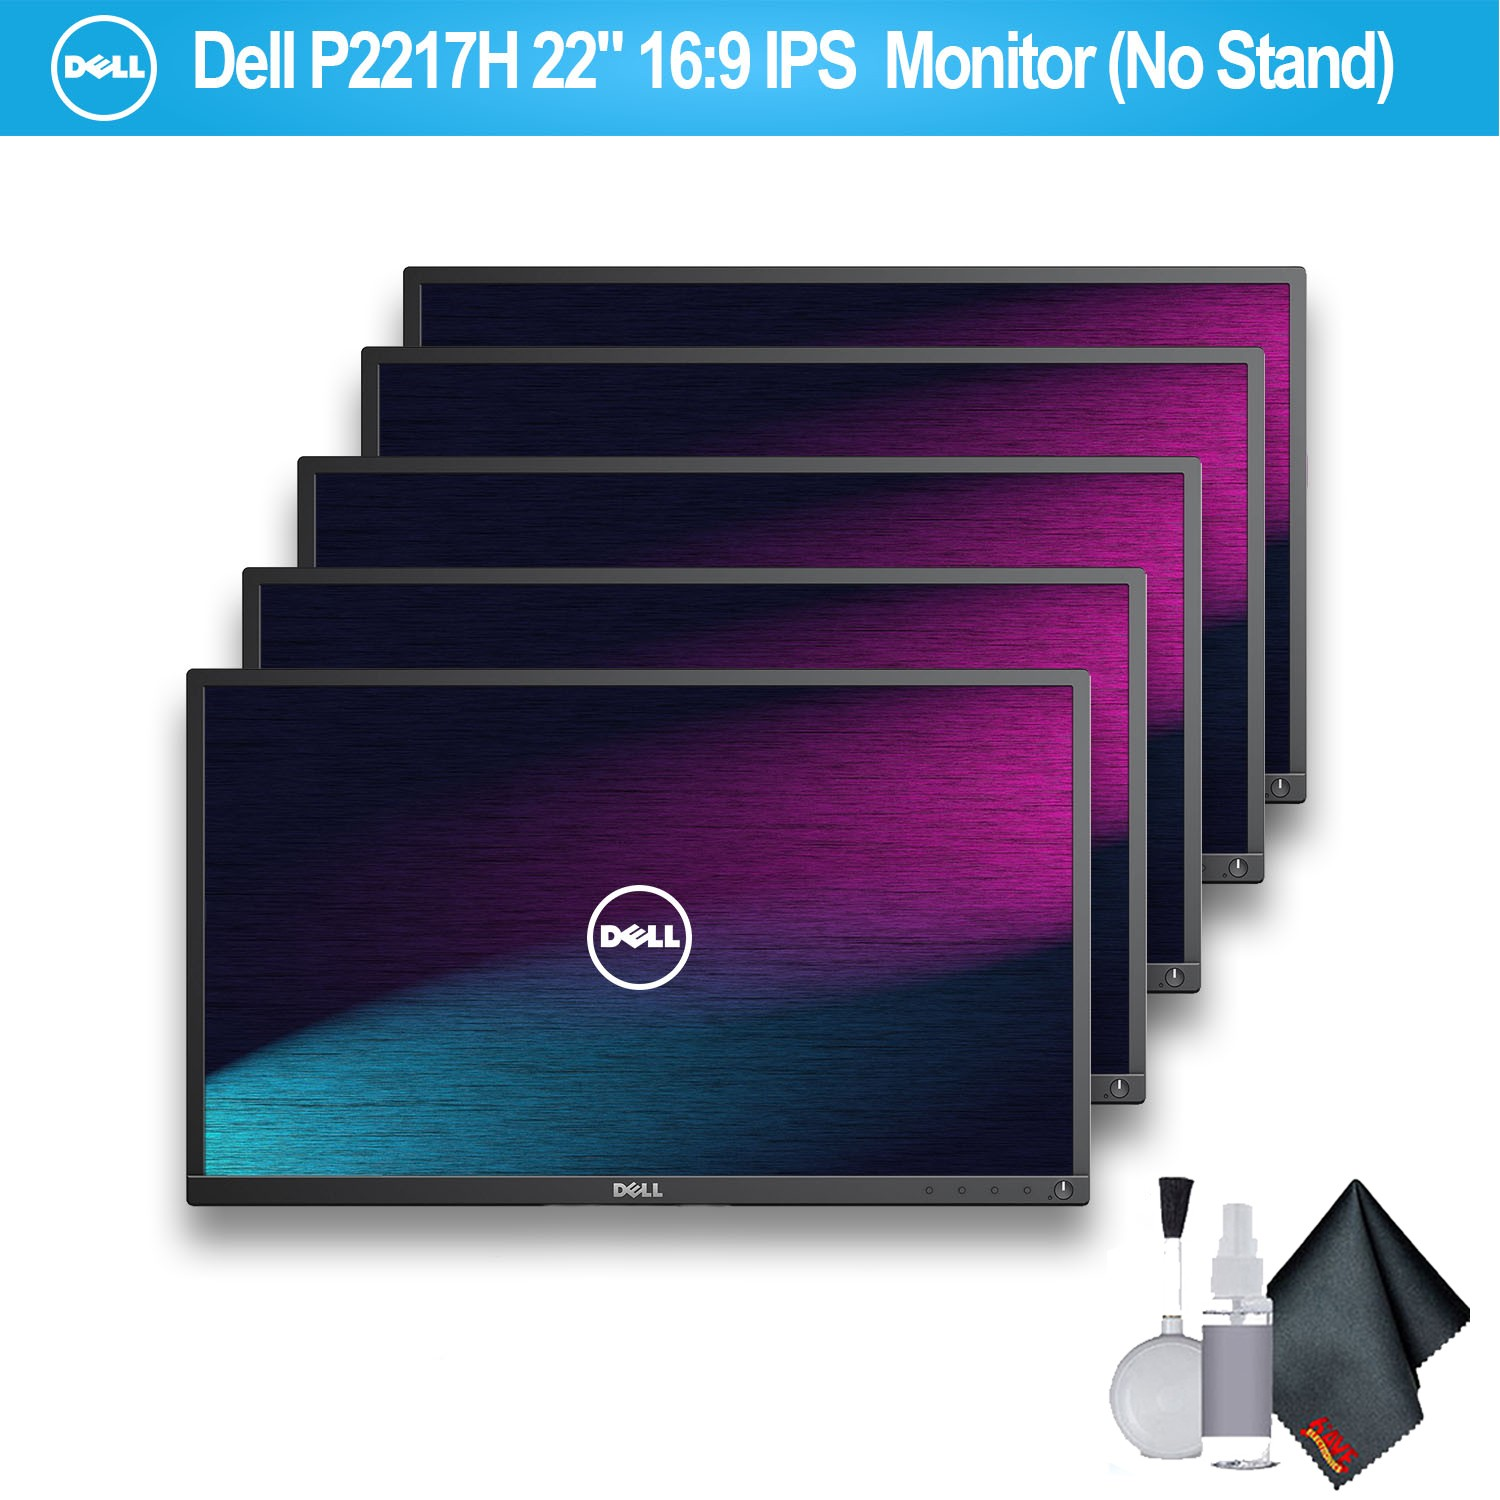 "Dell P2217H 22"" 16:9 IPS Monitor (No Stand) - 5 Pack"